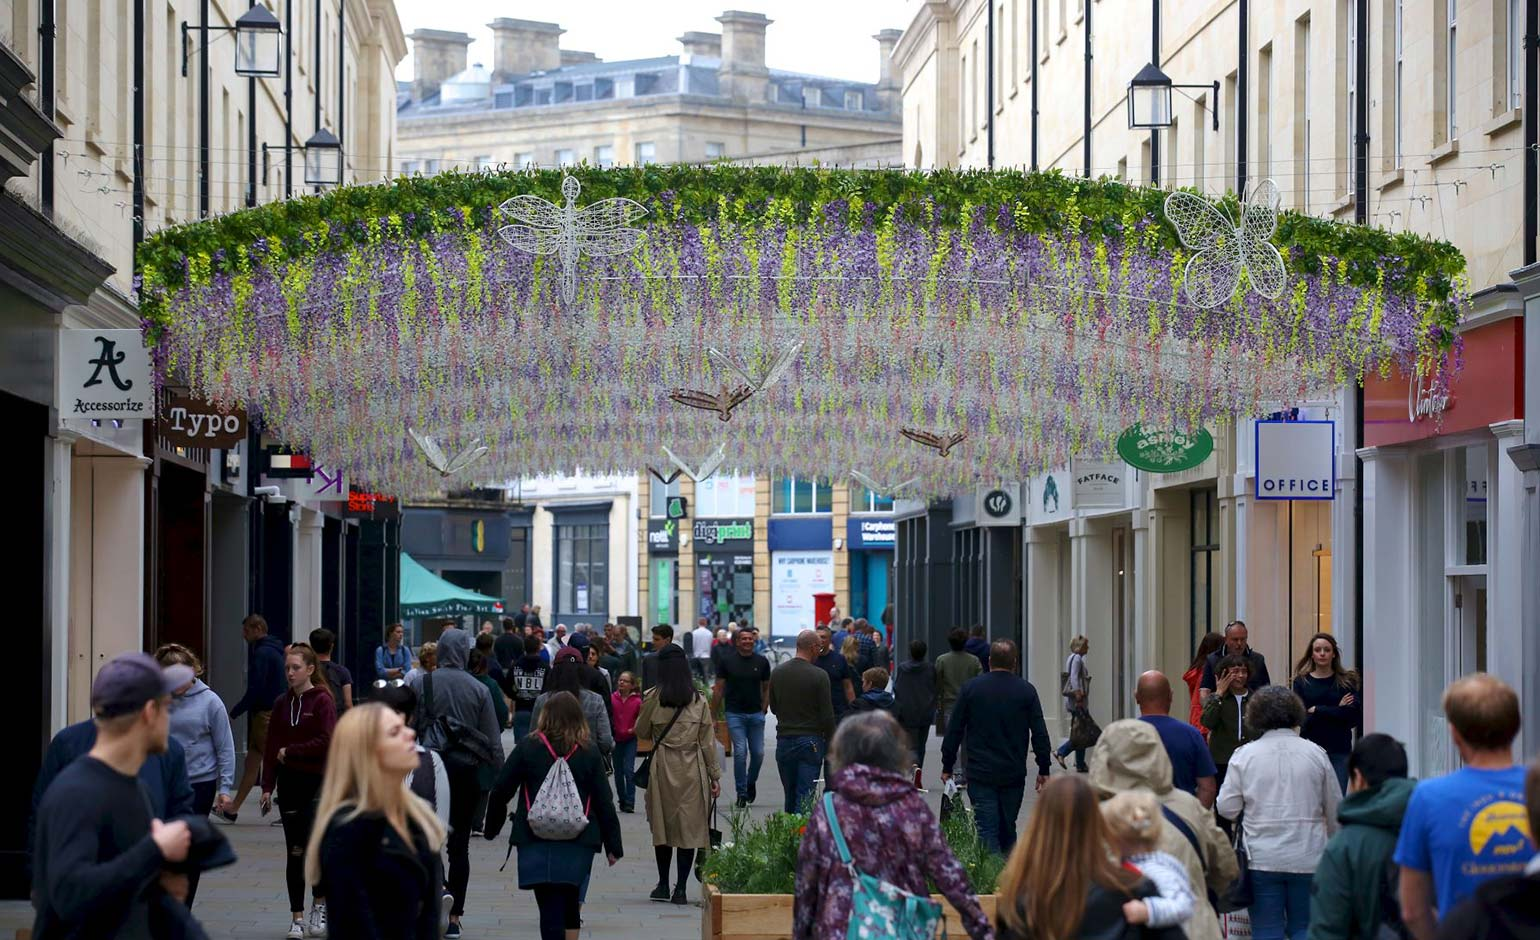 SouthGate unveils Secret Garden following last year's Wisteria Walk success